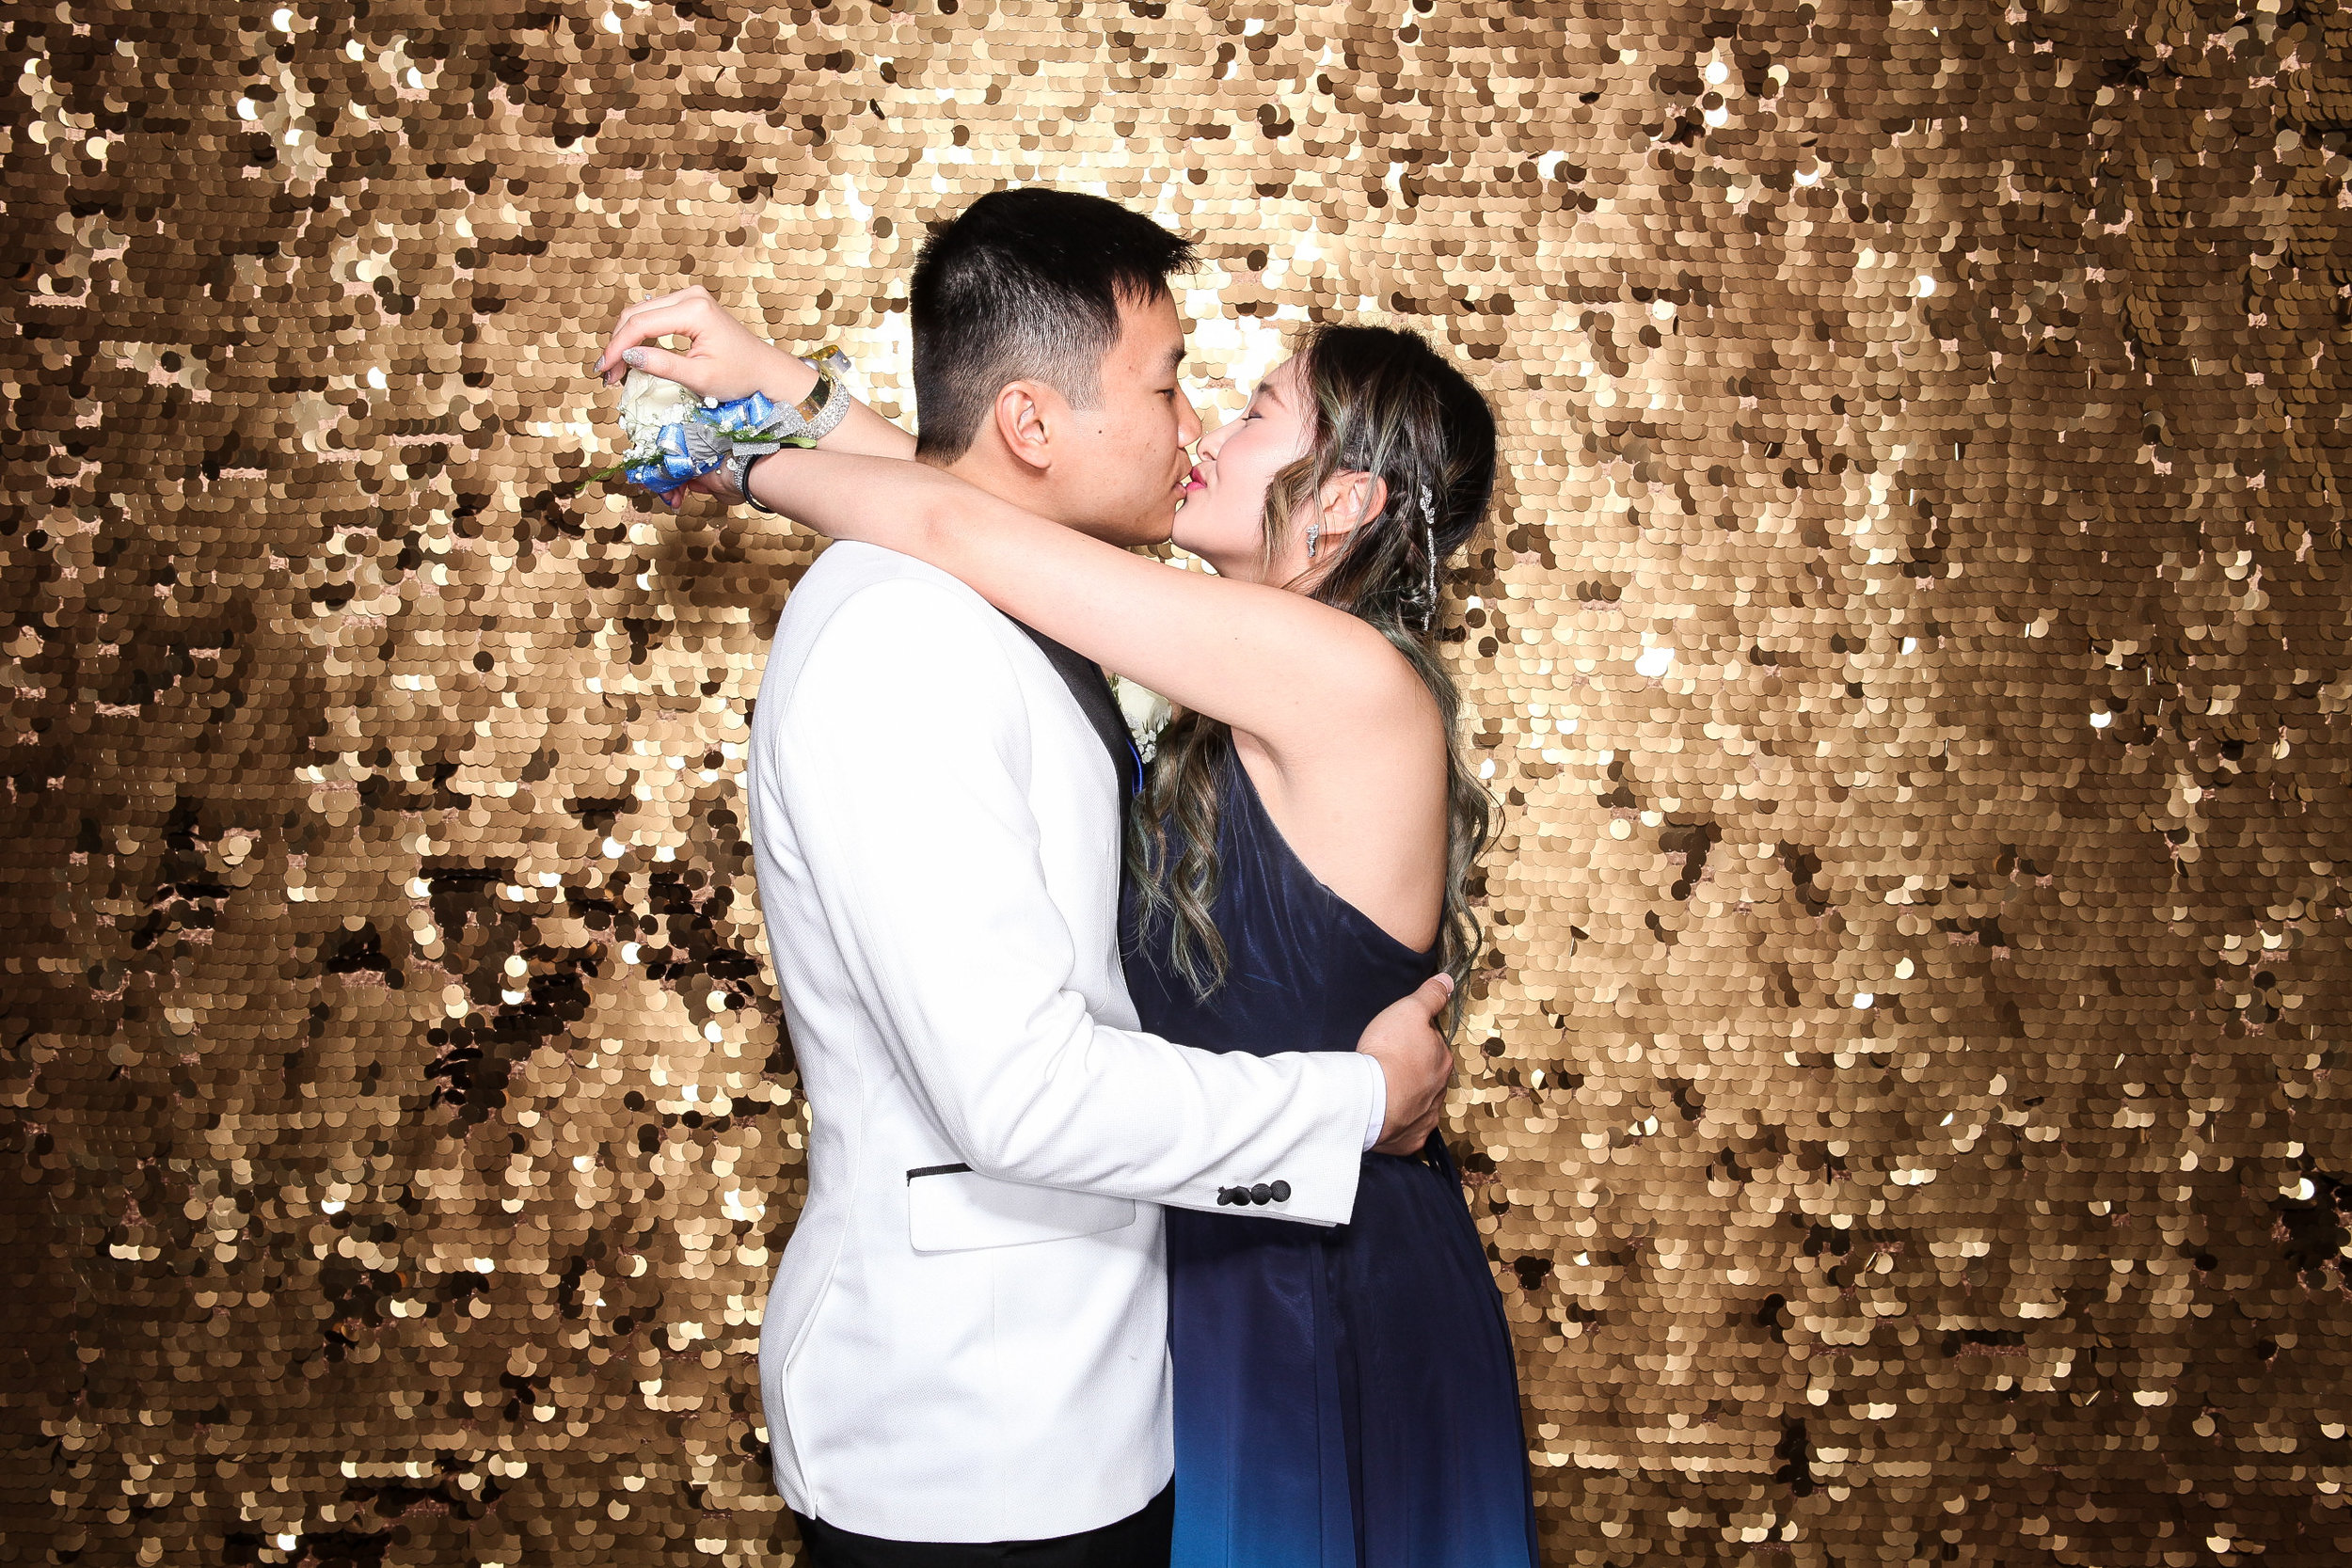 20190503_Adelphi_Senior_Formal-063.jpg